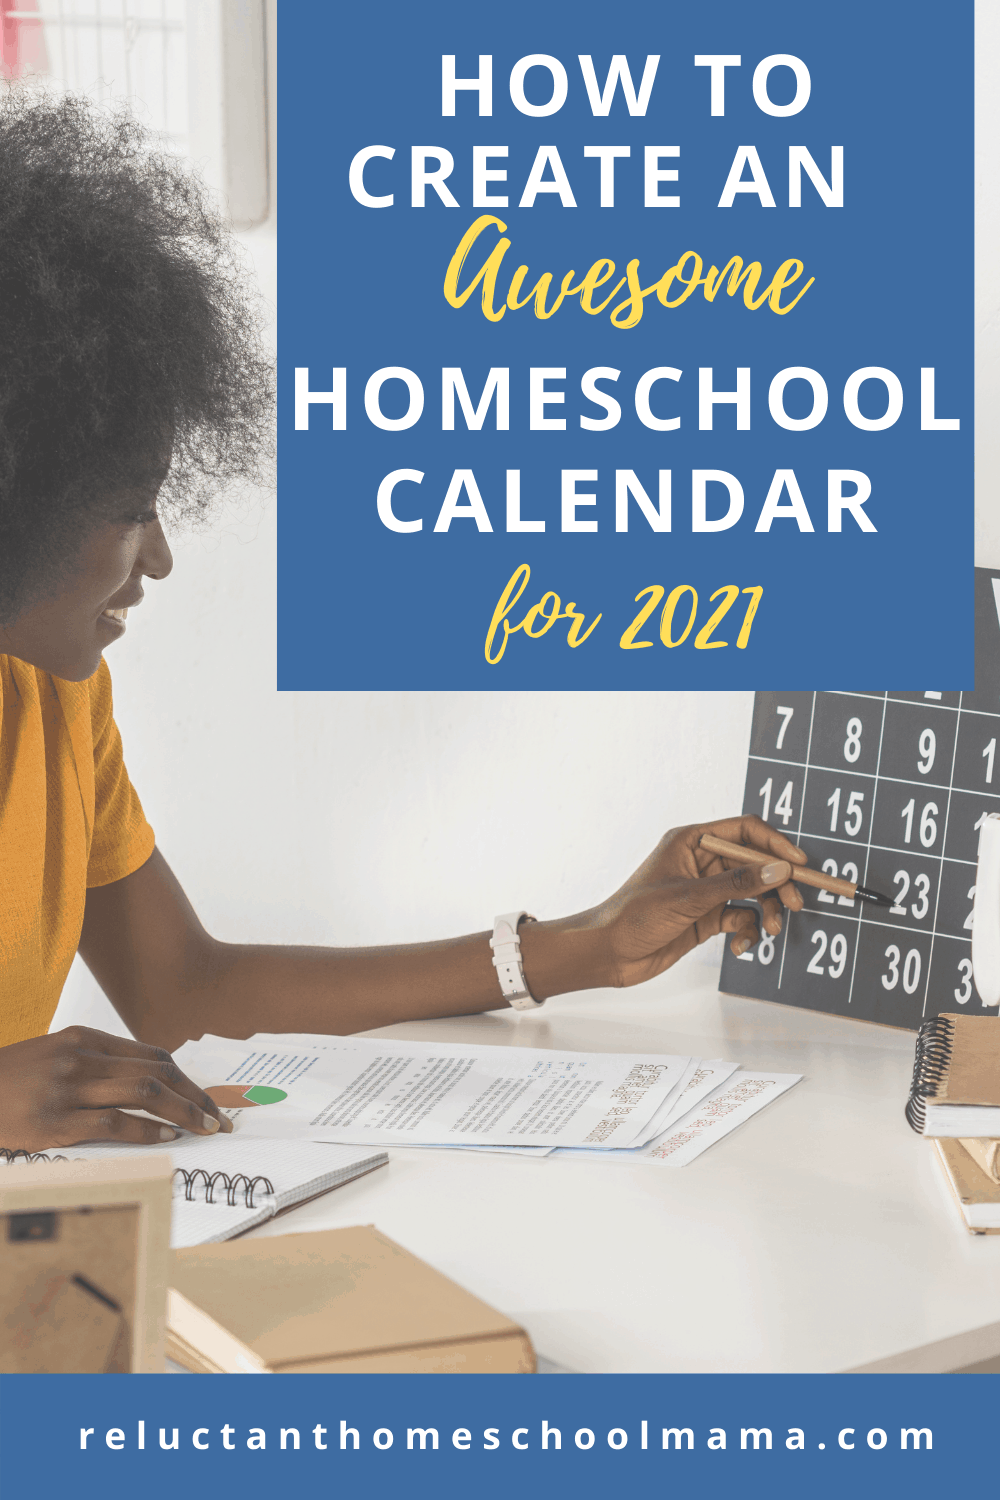 How to Easily Create an Amazing Homeschool Calendar for Next Year